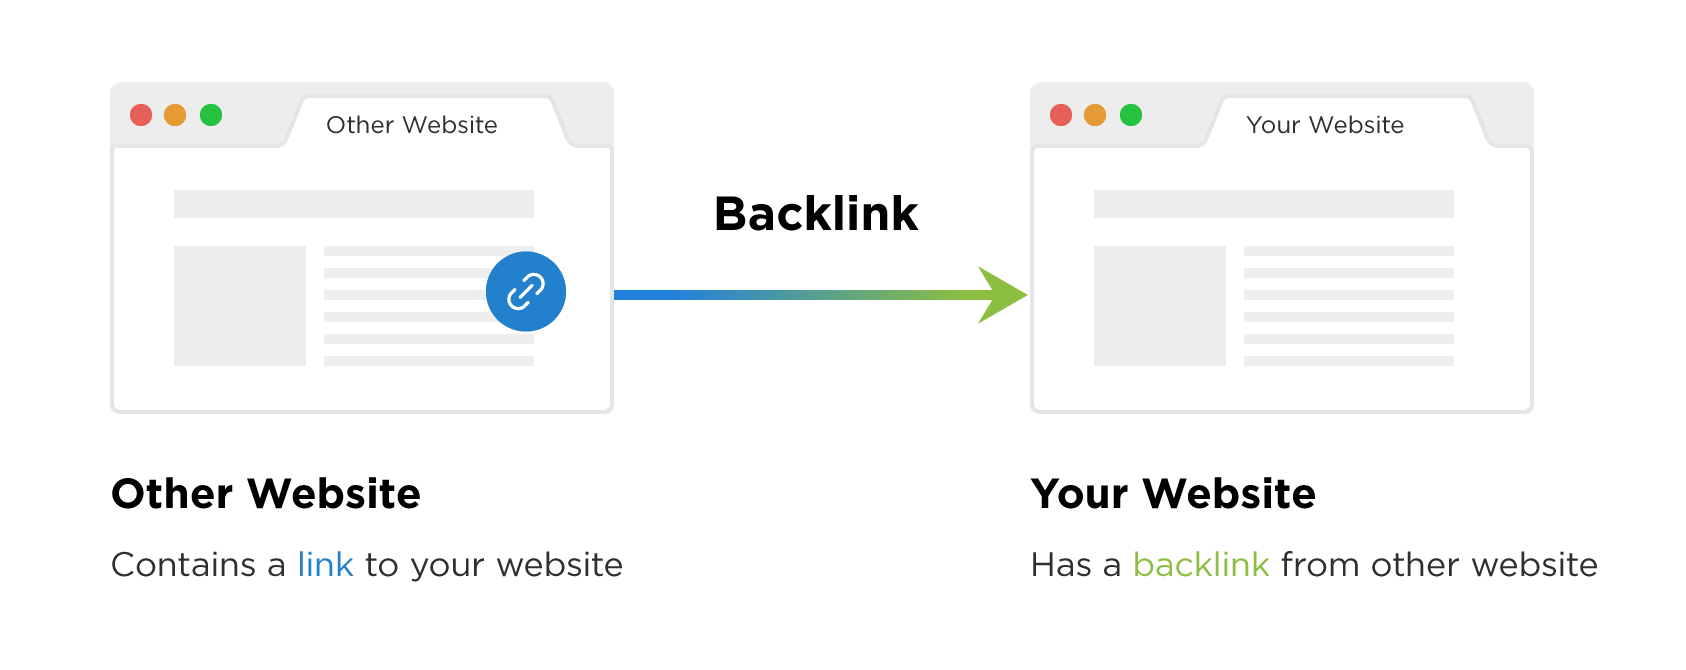 backlink explain